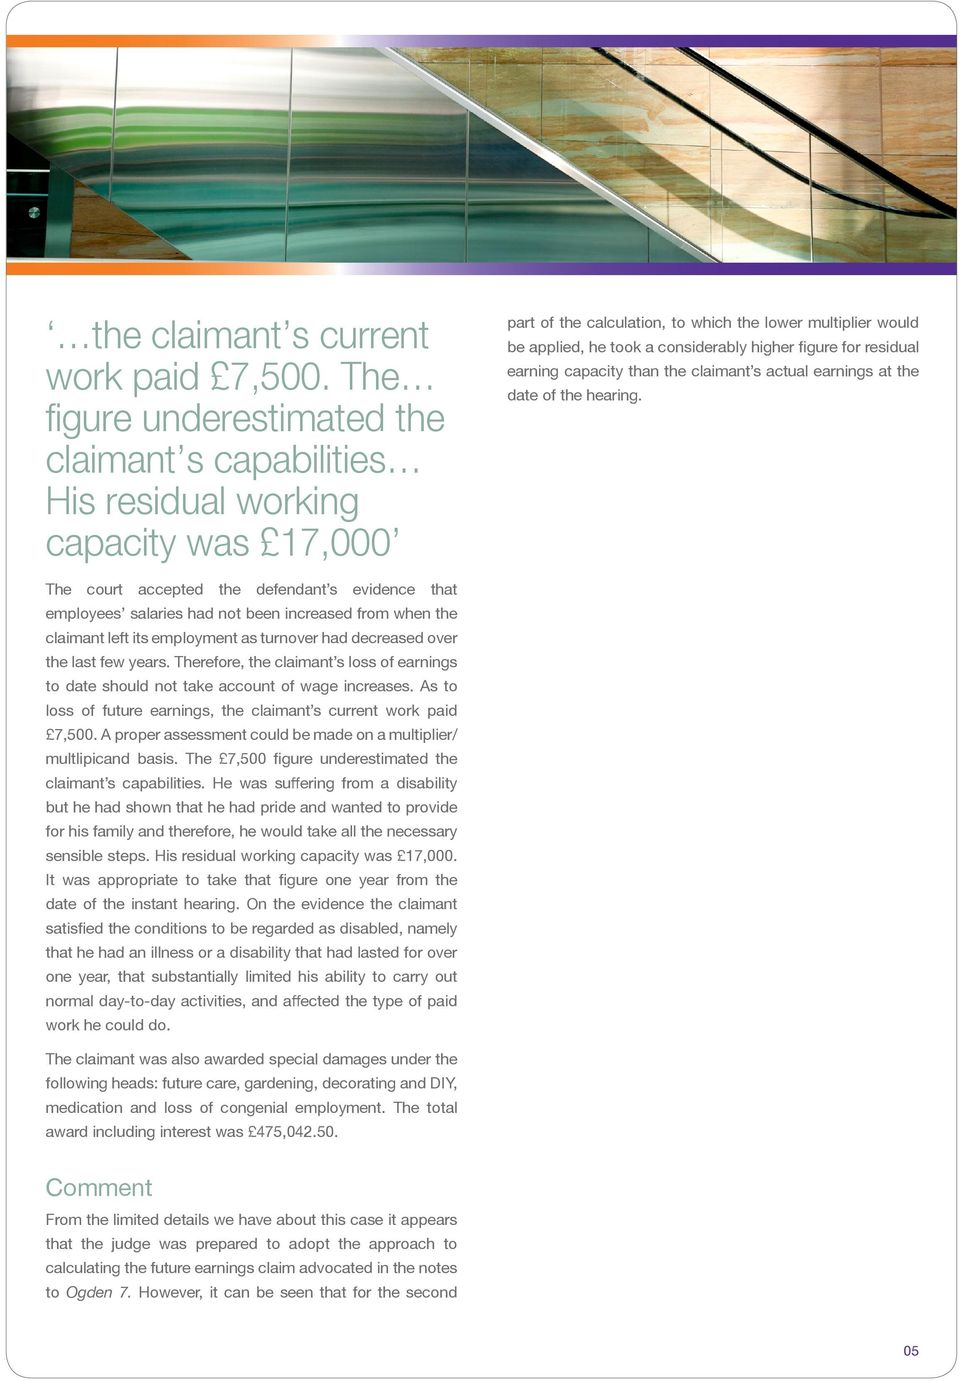 figure for residual earning capacity than the claimant s actual earnings at the date of the hearing.